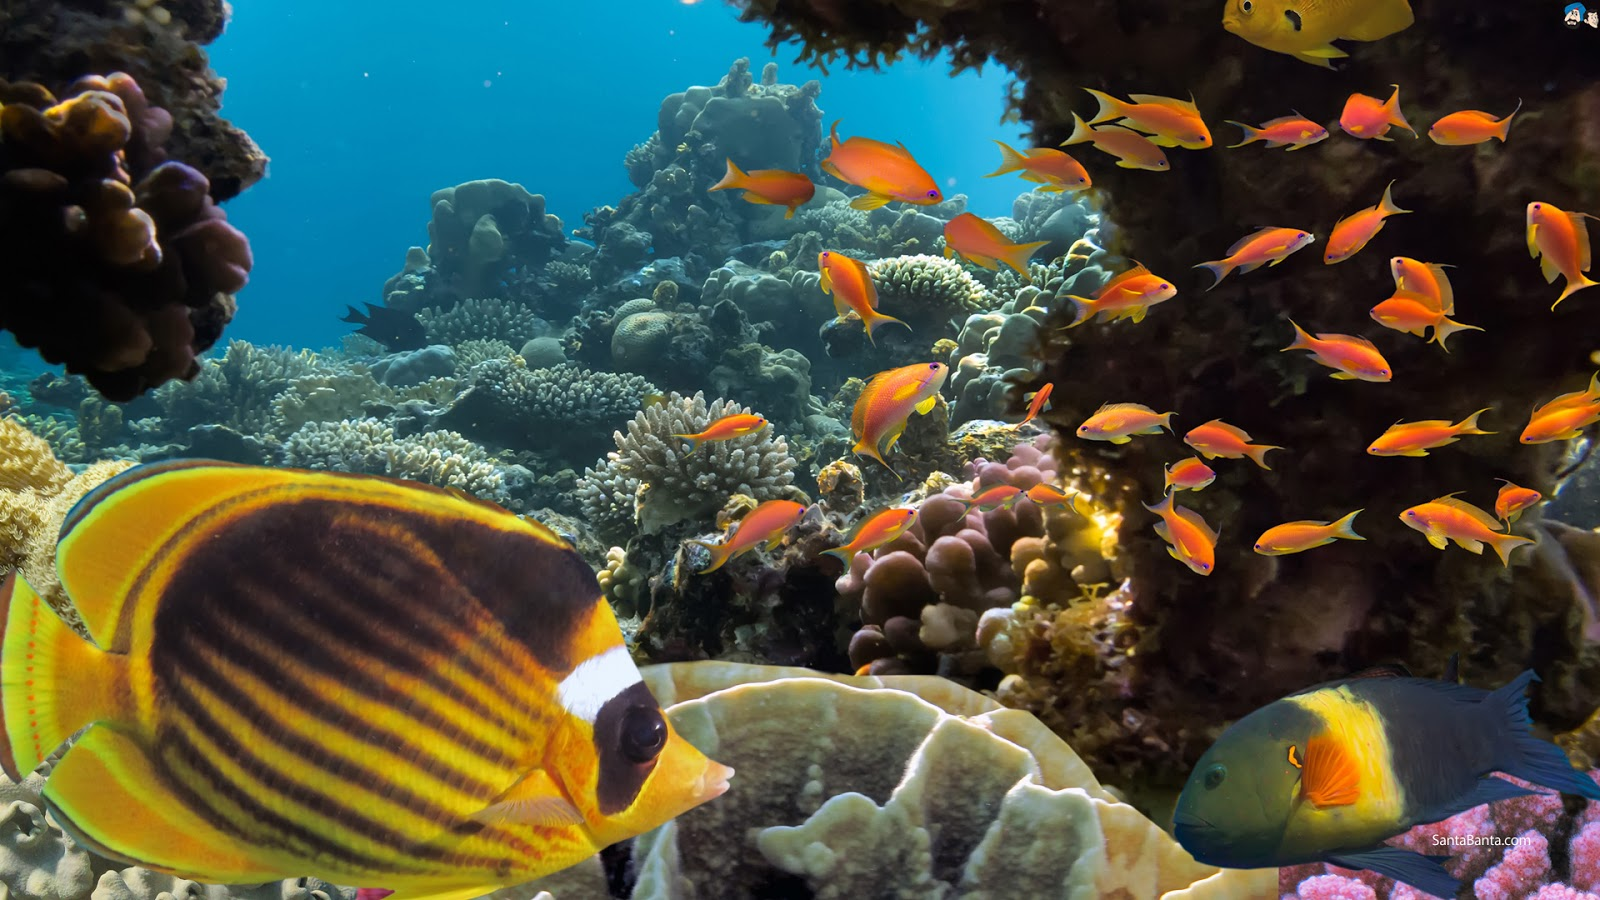 3d Fish Wallpapers For Desktop Aquatic Hd Wallpapers Most Beautiful Places In The World